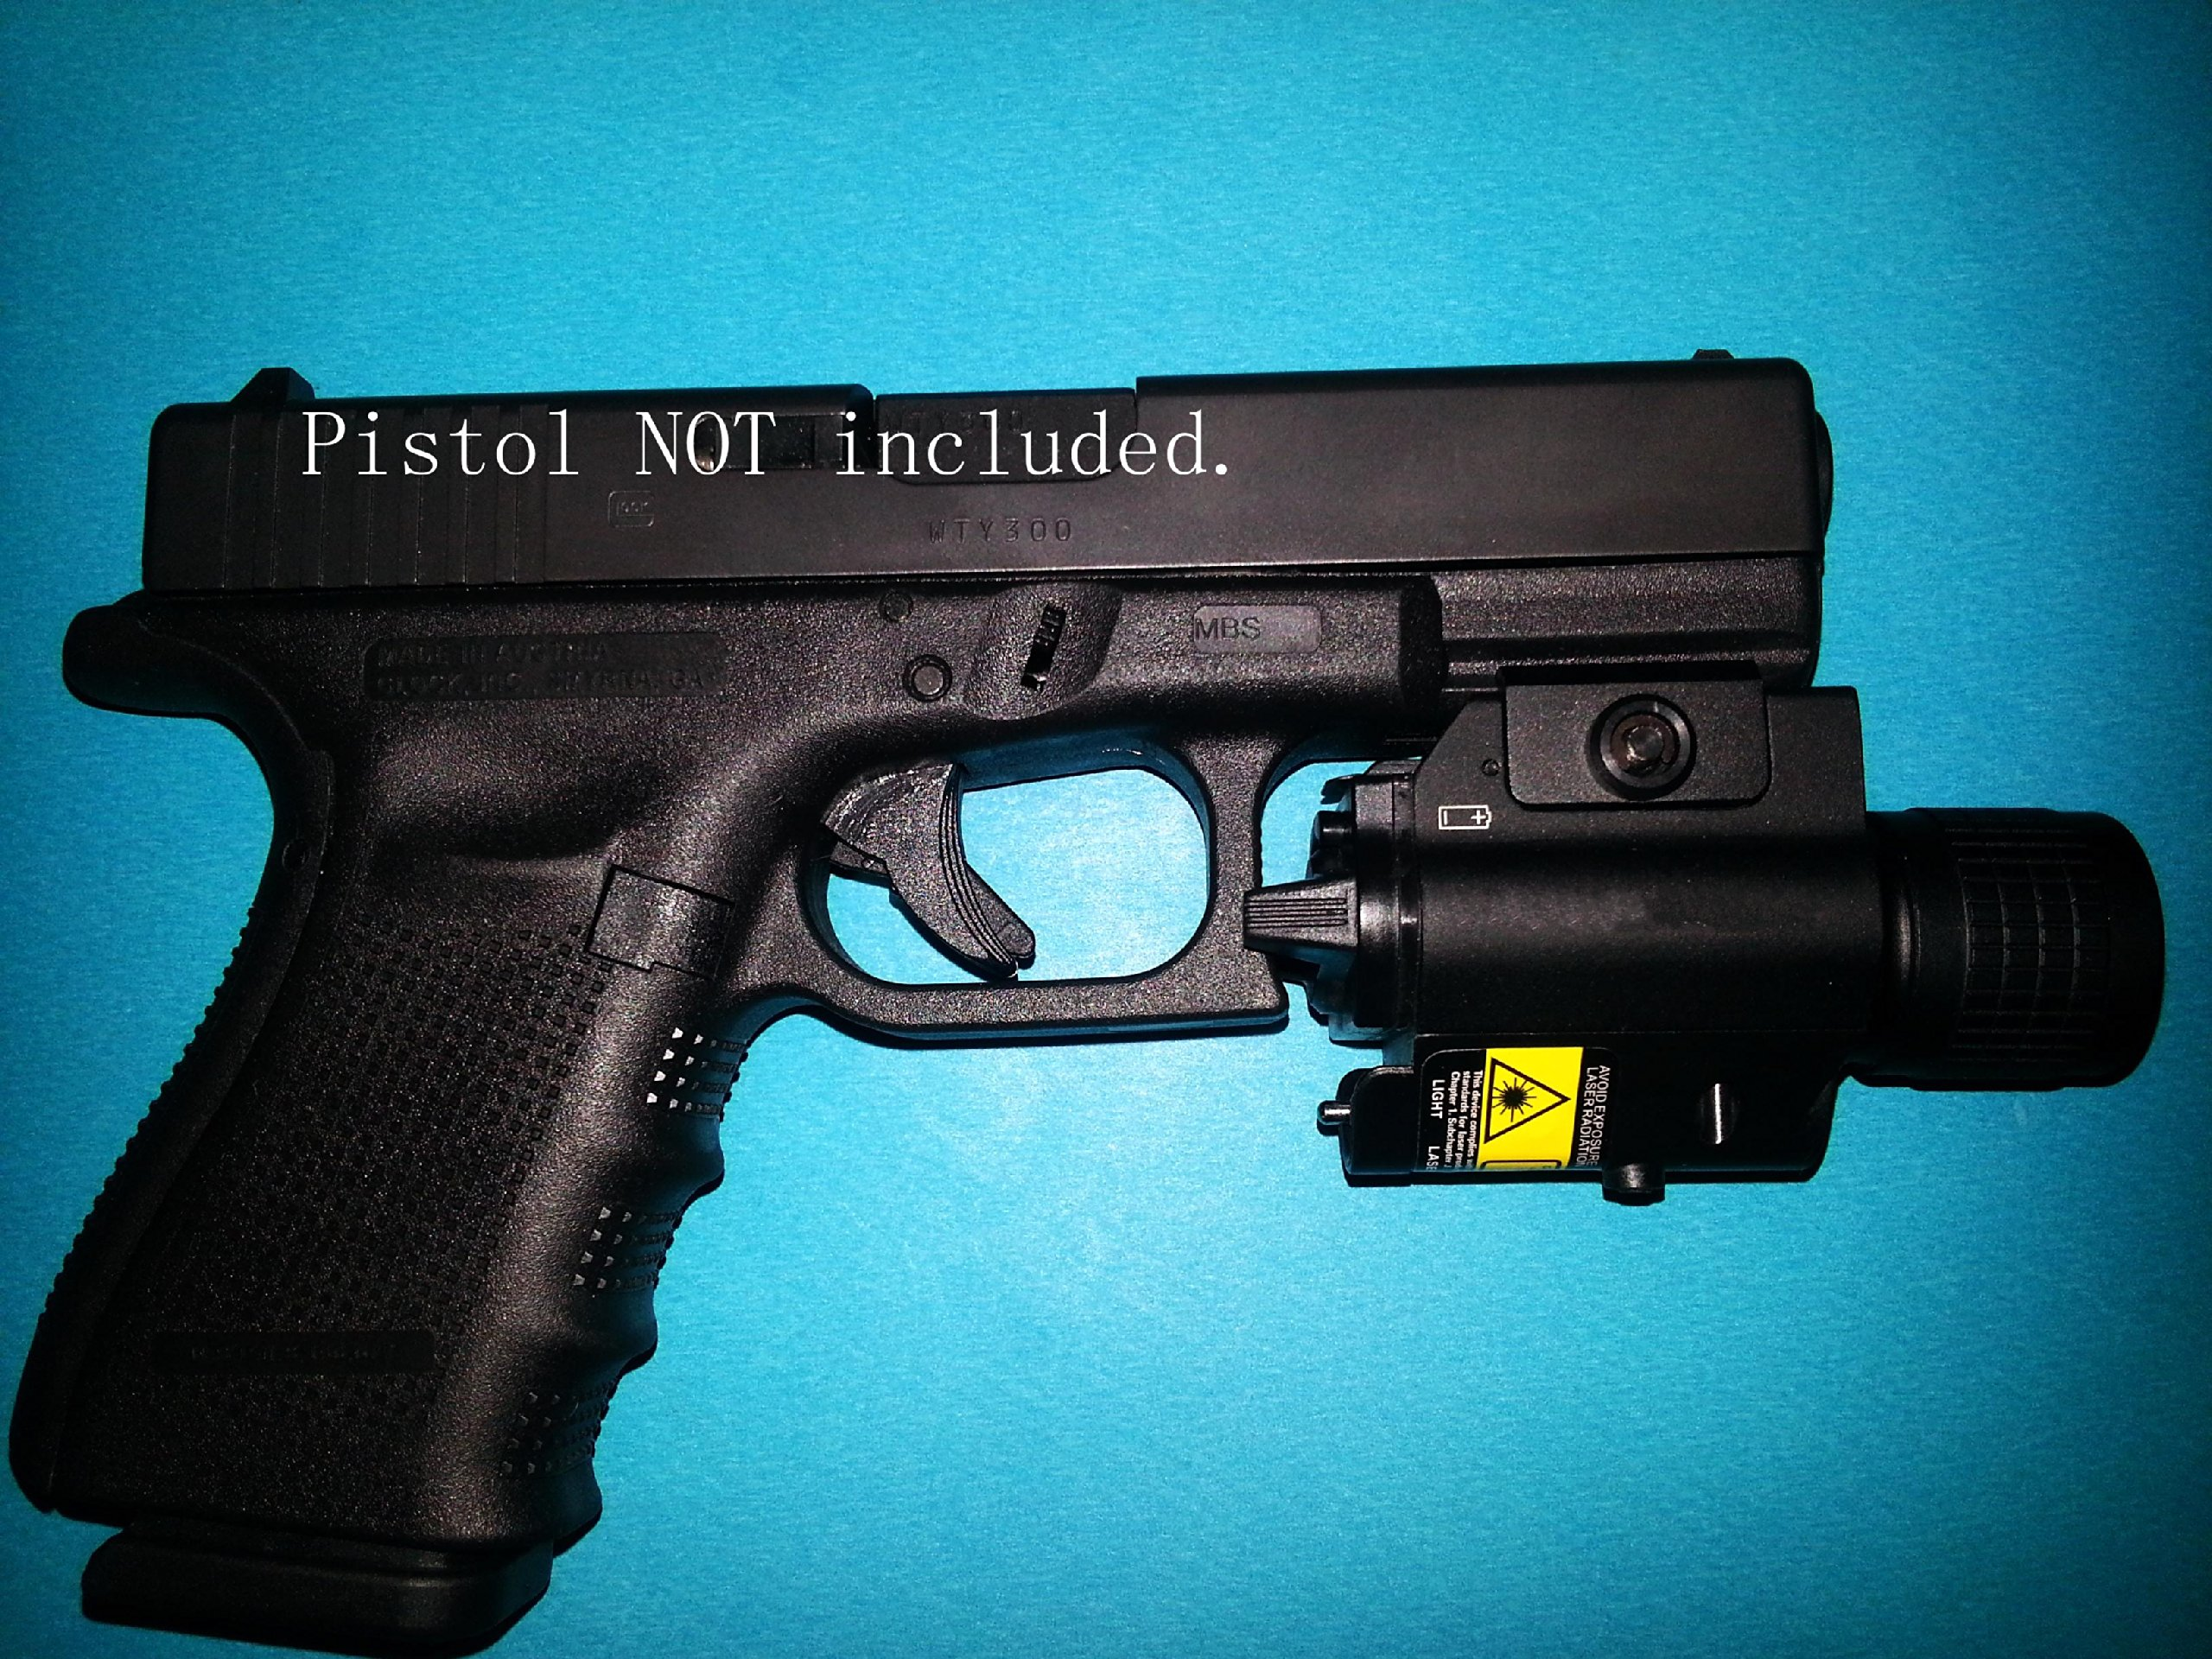 Ade Advanced Optics Tactical Compact Rail Mounted RED Laser Sight with 200 Lumen LED Flashlight by Ade Advanced Optics